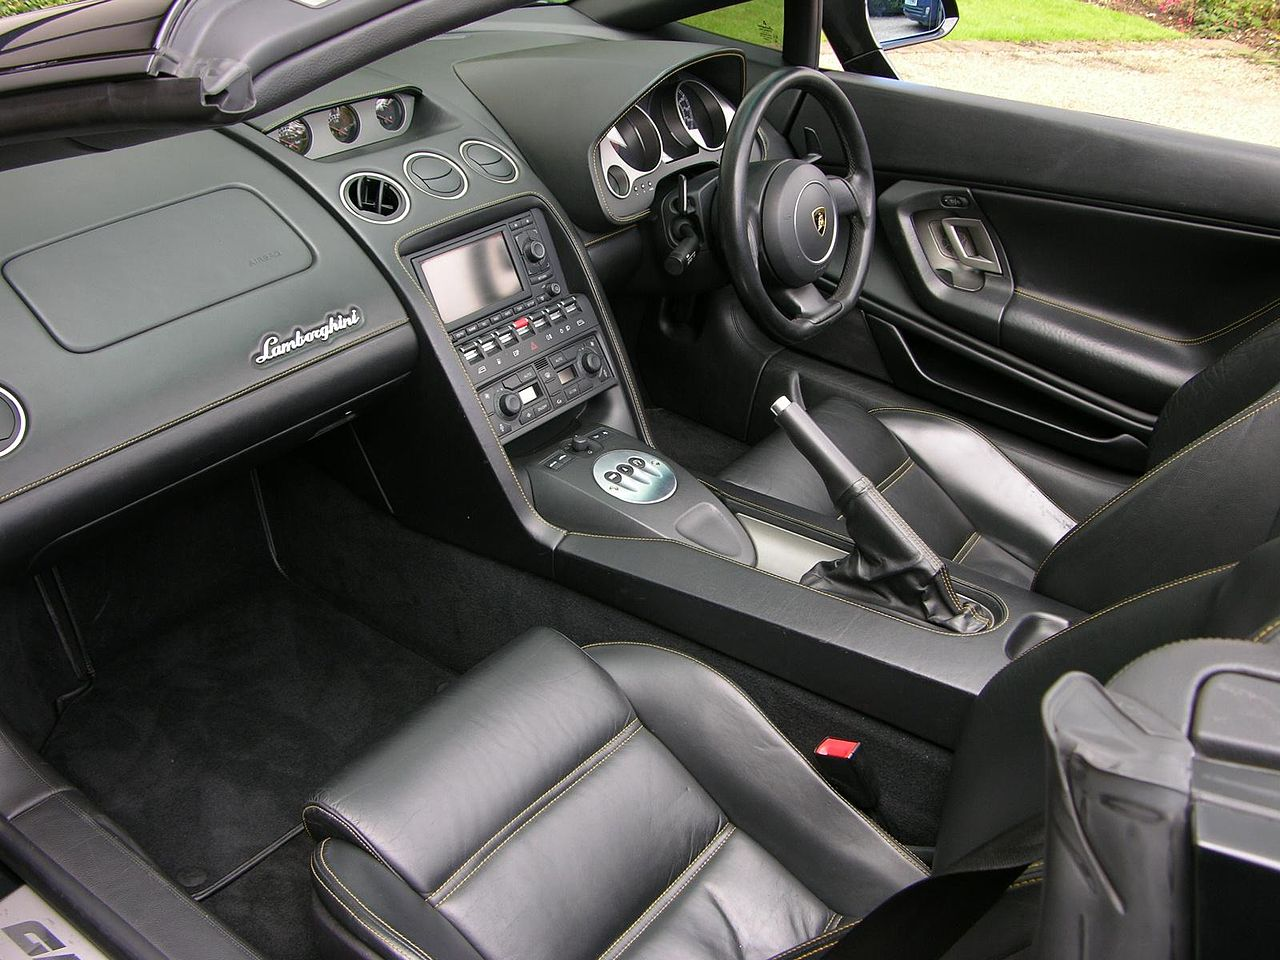 File:2006 Lamborghini Gallardo Spyder E-Gear - Flickr - The Car Spy (14).jpg